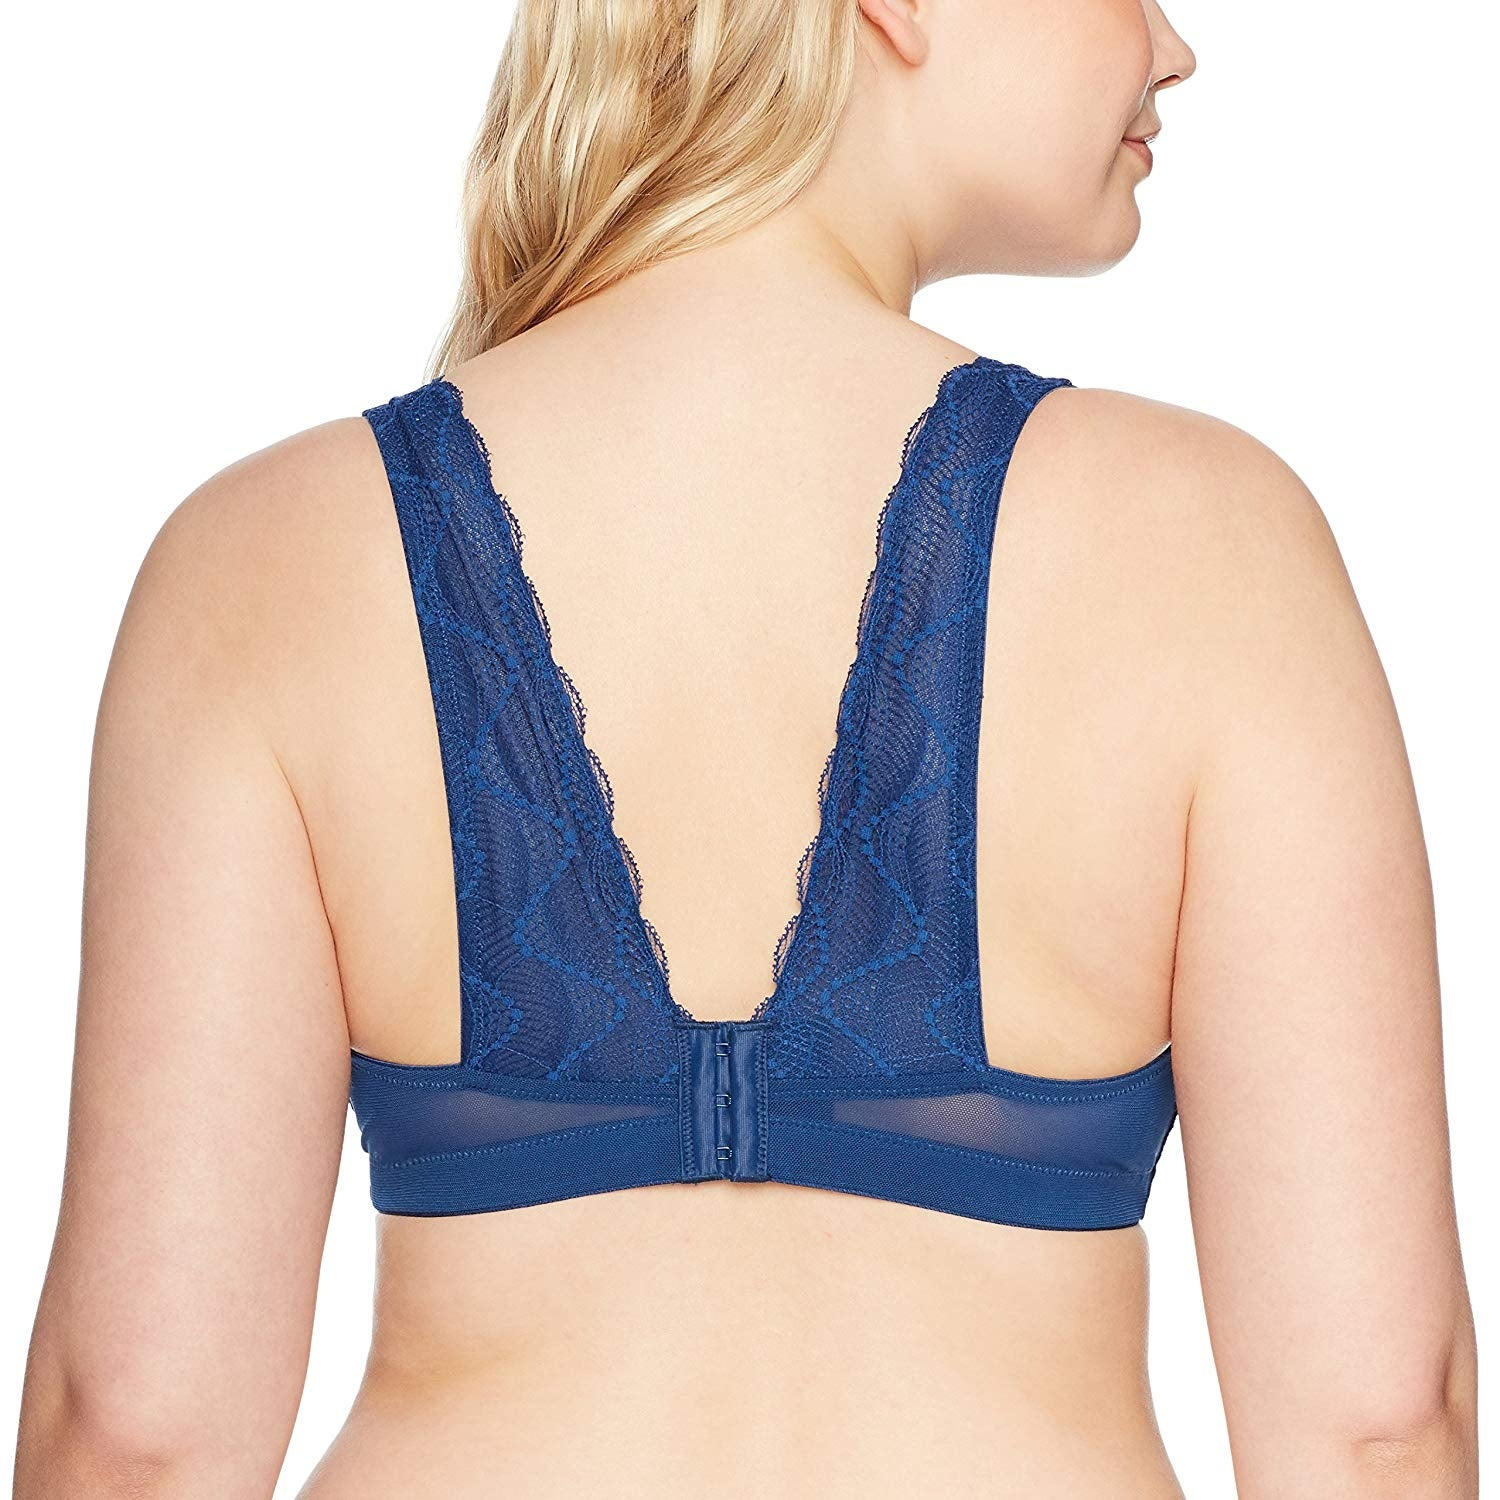 e7105cb262 Shop Paramour Women s Bette Wire Free Lace Bralette 145046 - Large - Free  Shipping On Orders Over  45 - Overstock.com - 23561724